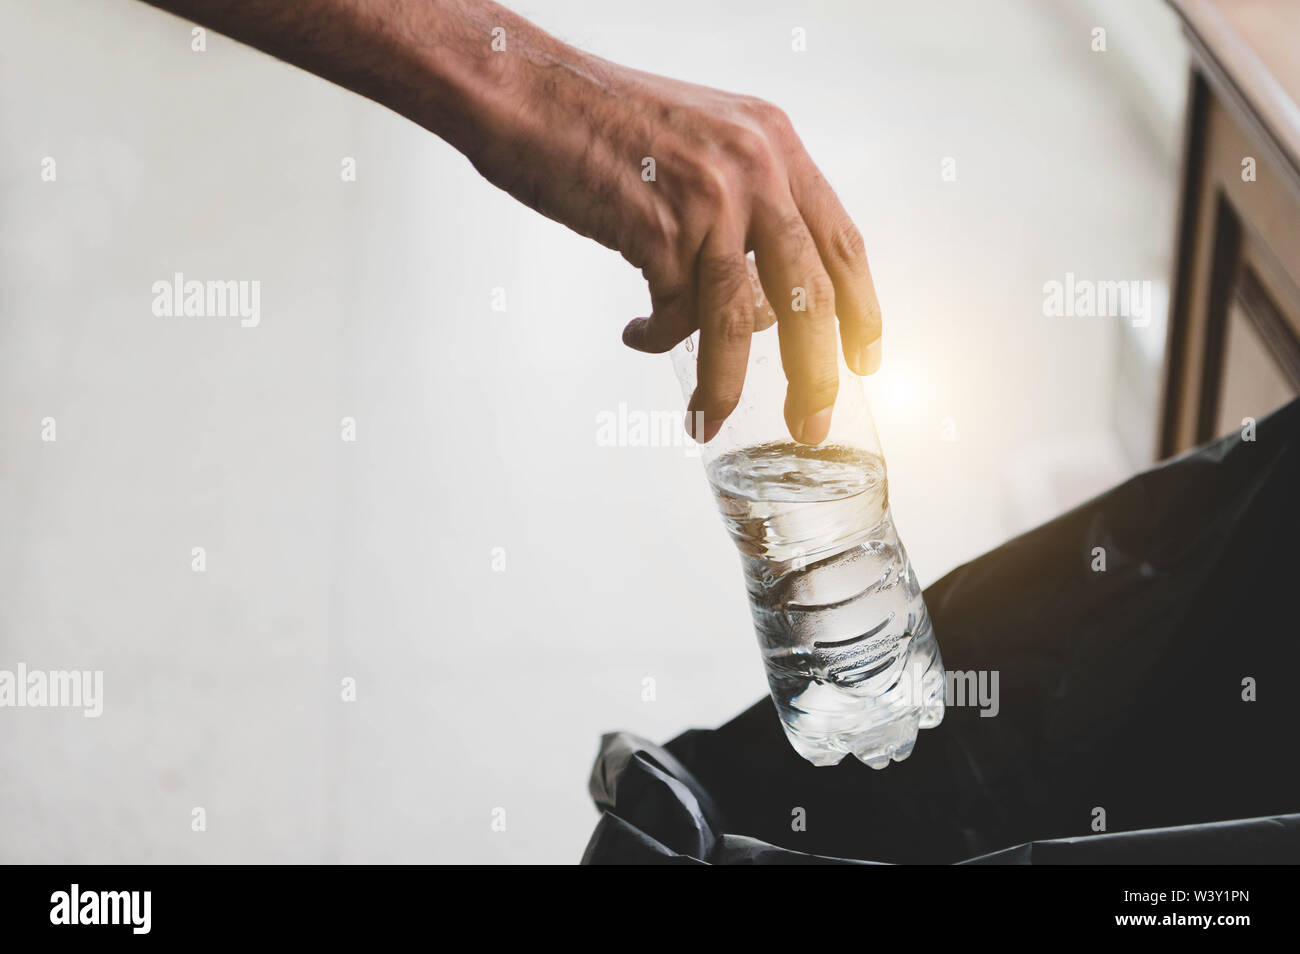 Closeup of hand throwing garbage into black bag bin. Ecology and environment. Pollution and recycled concept. - Stock Image